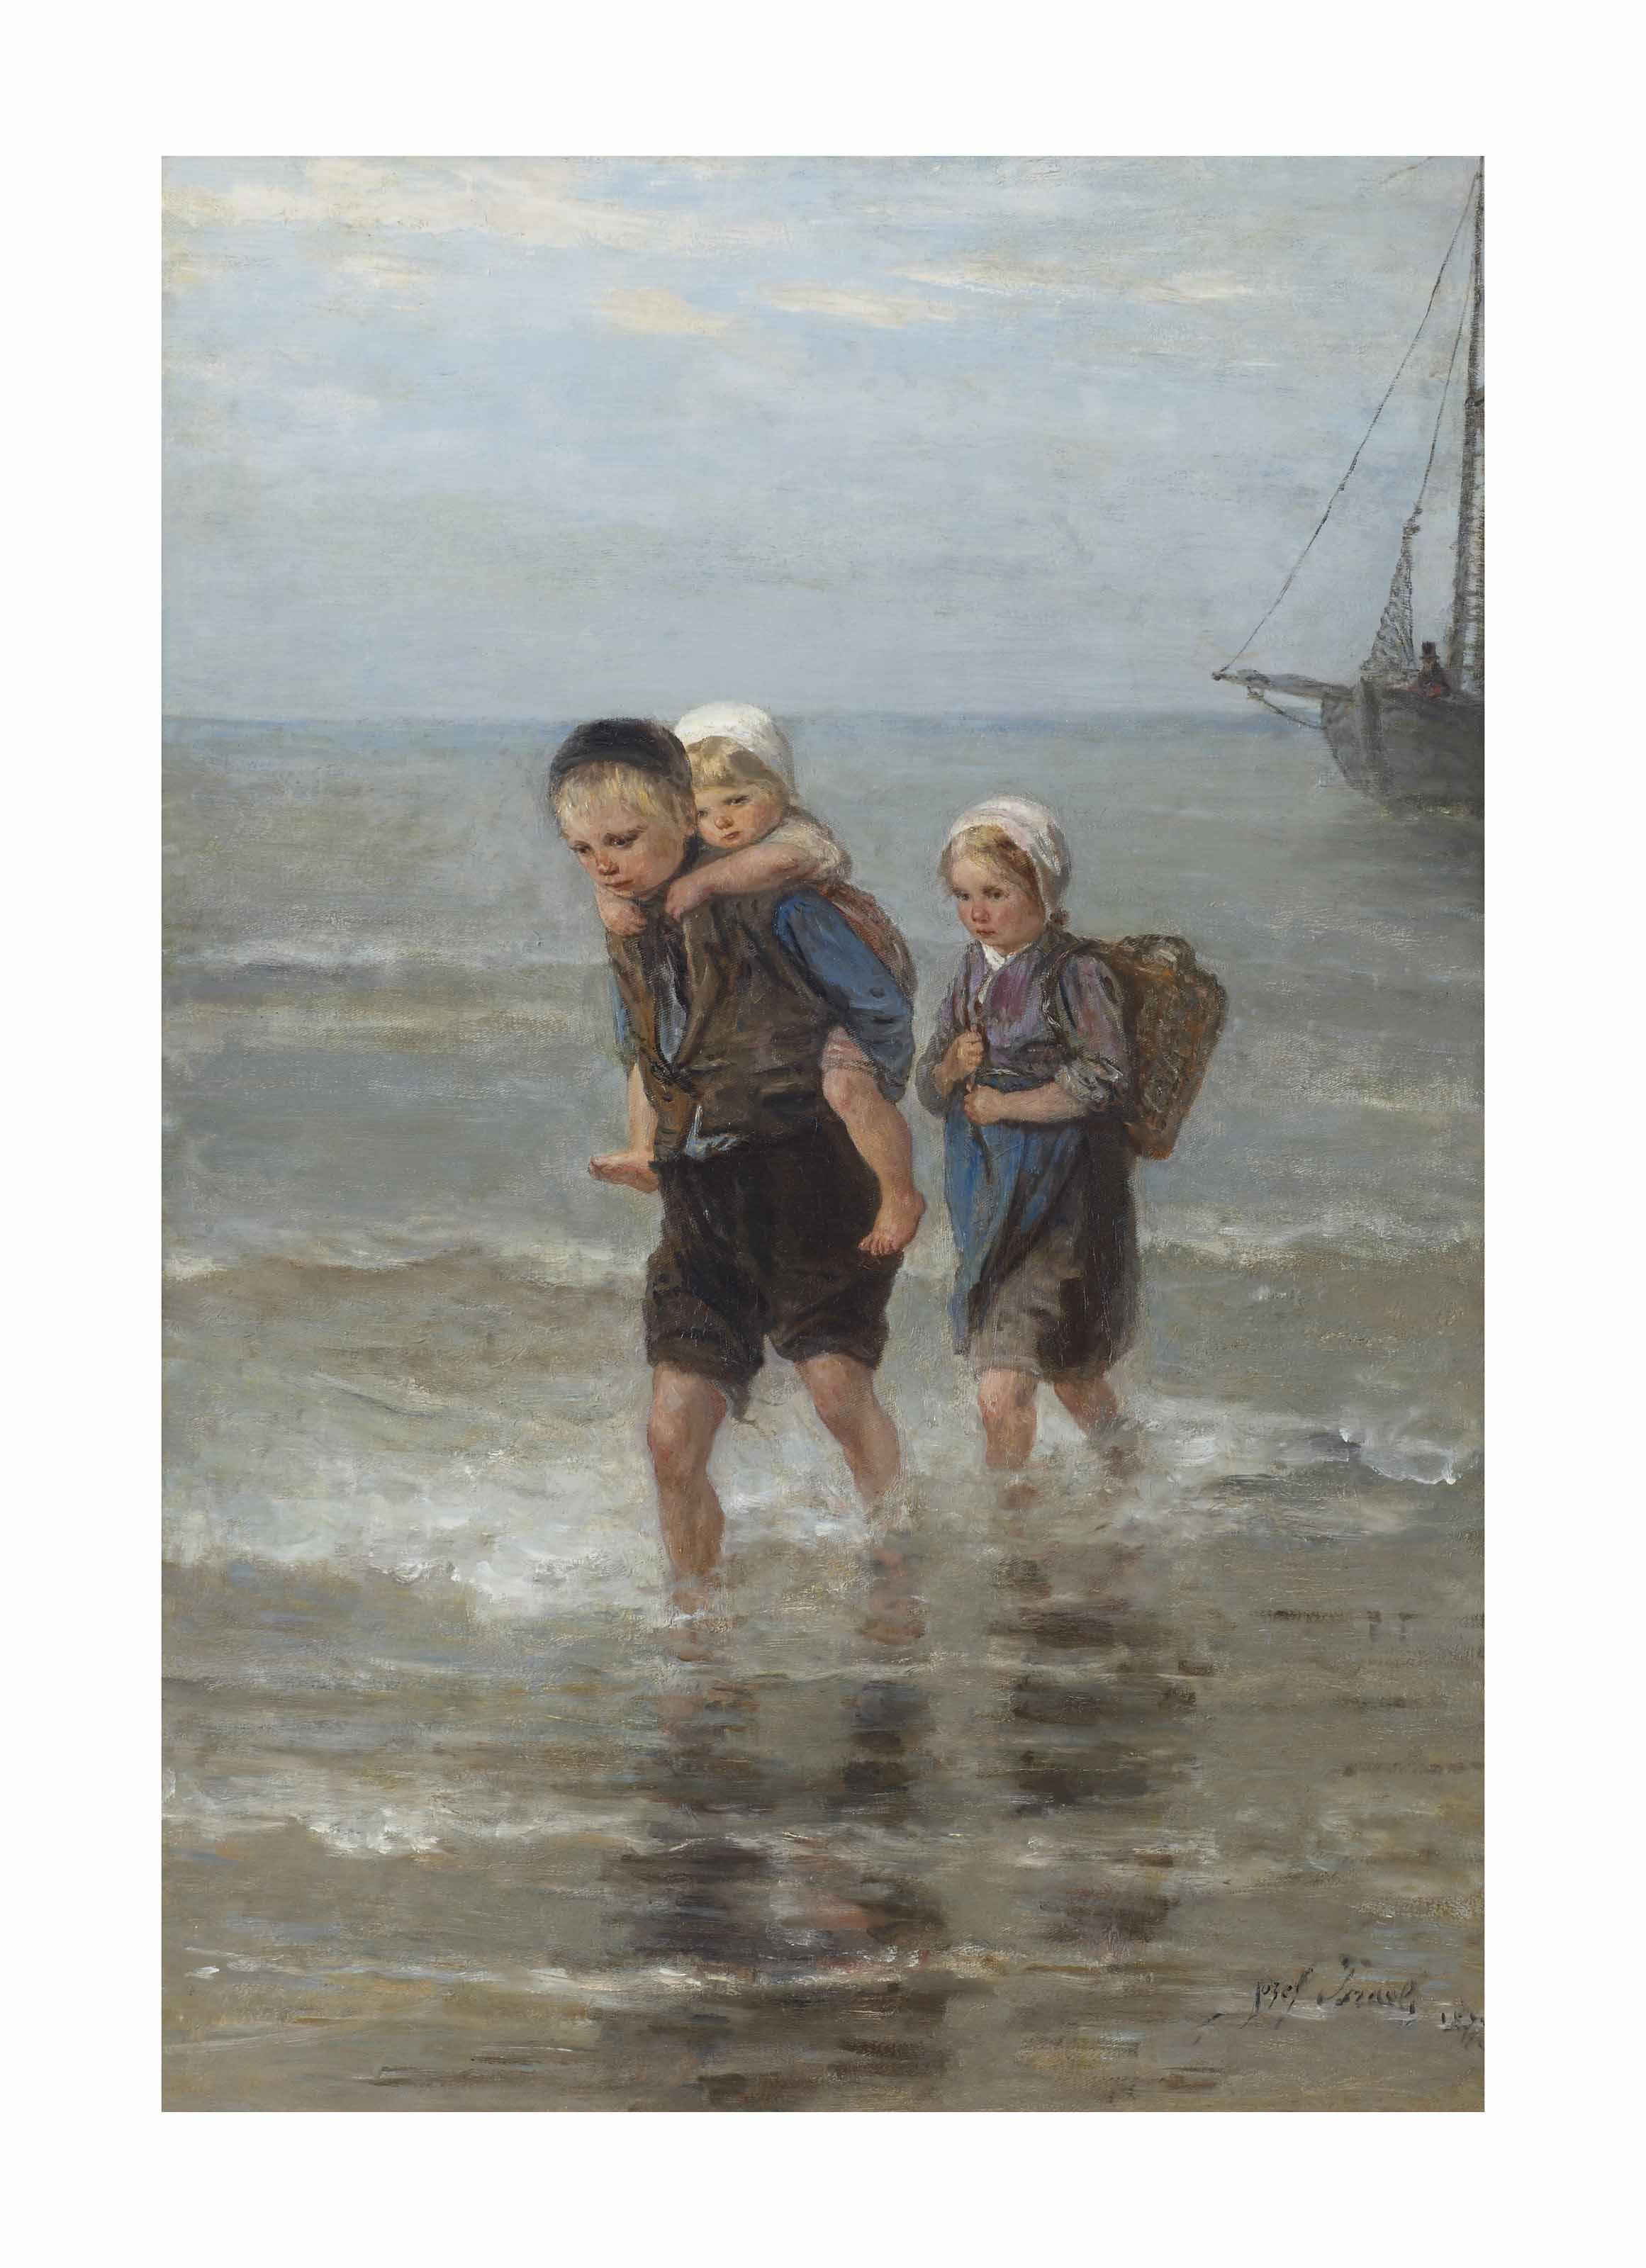 Children in the breakers